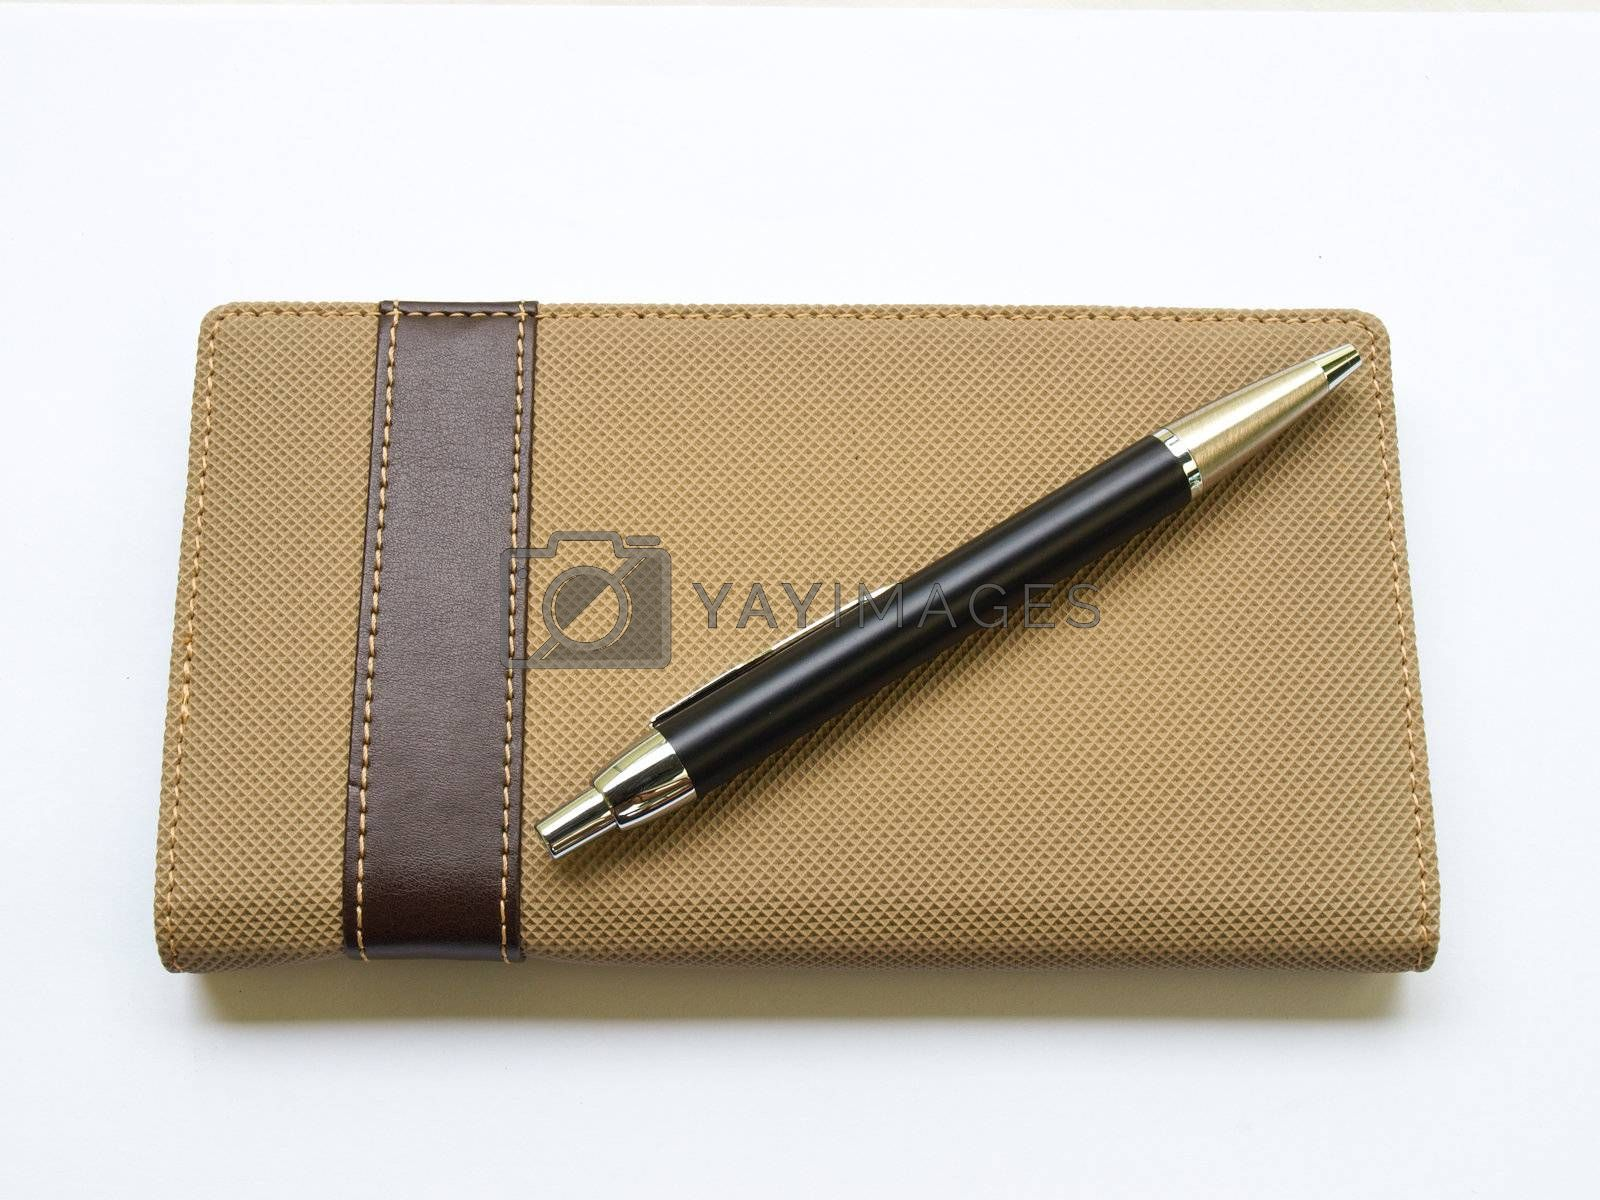 Light brown notebook and pen  cover isolated on white background